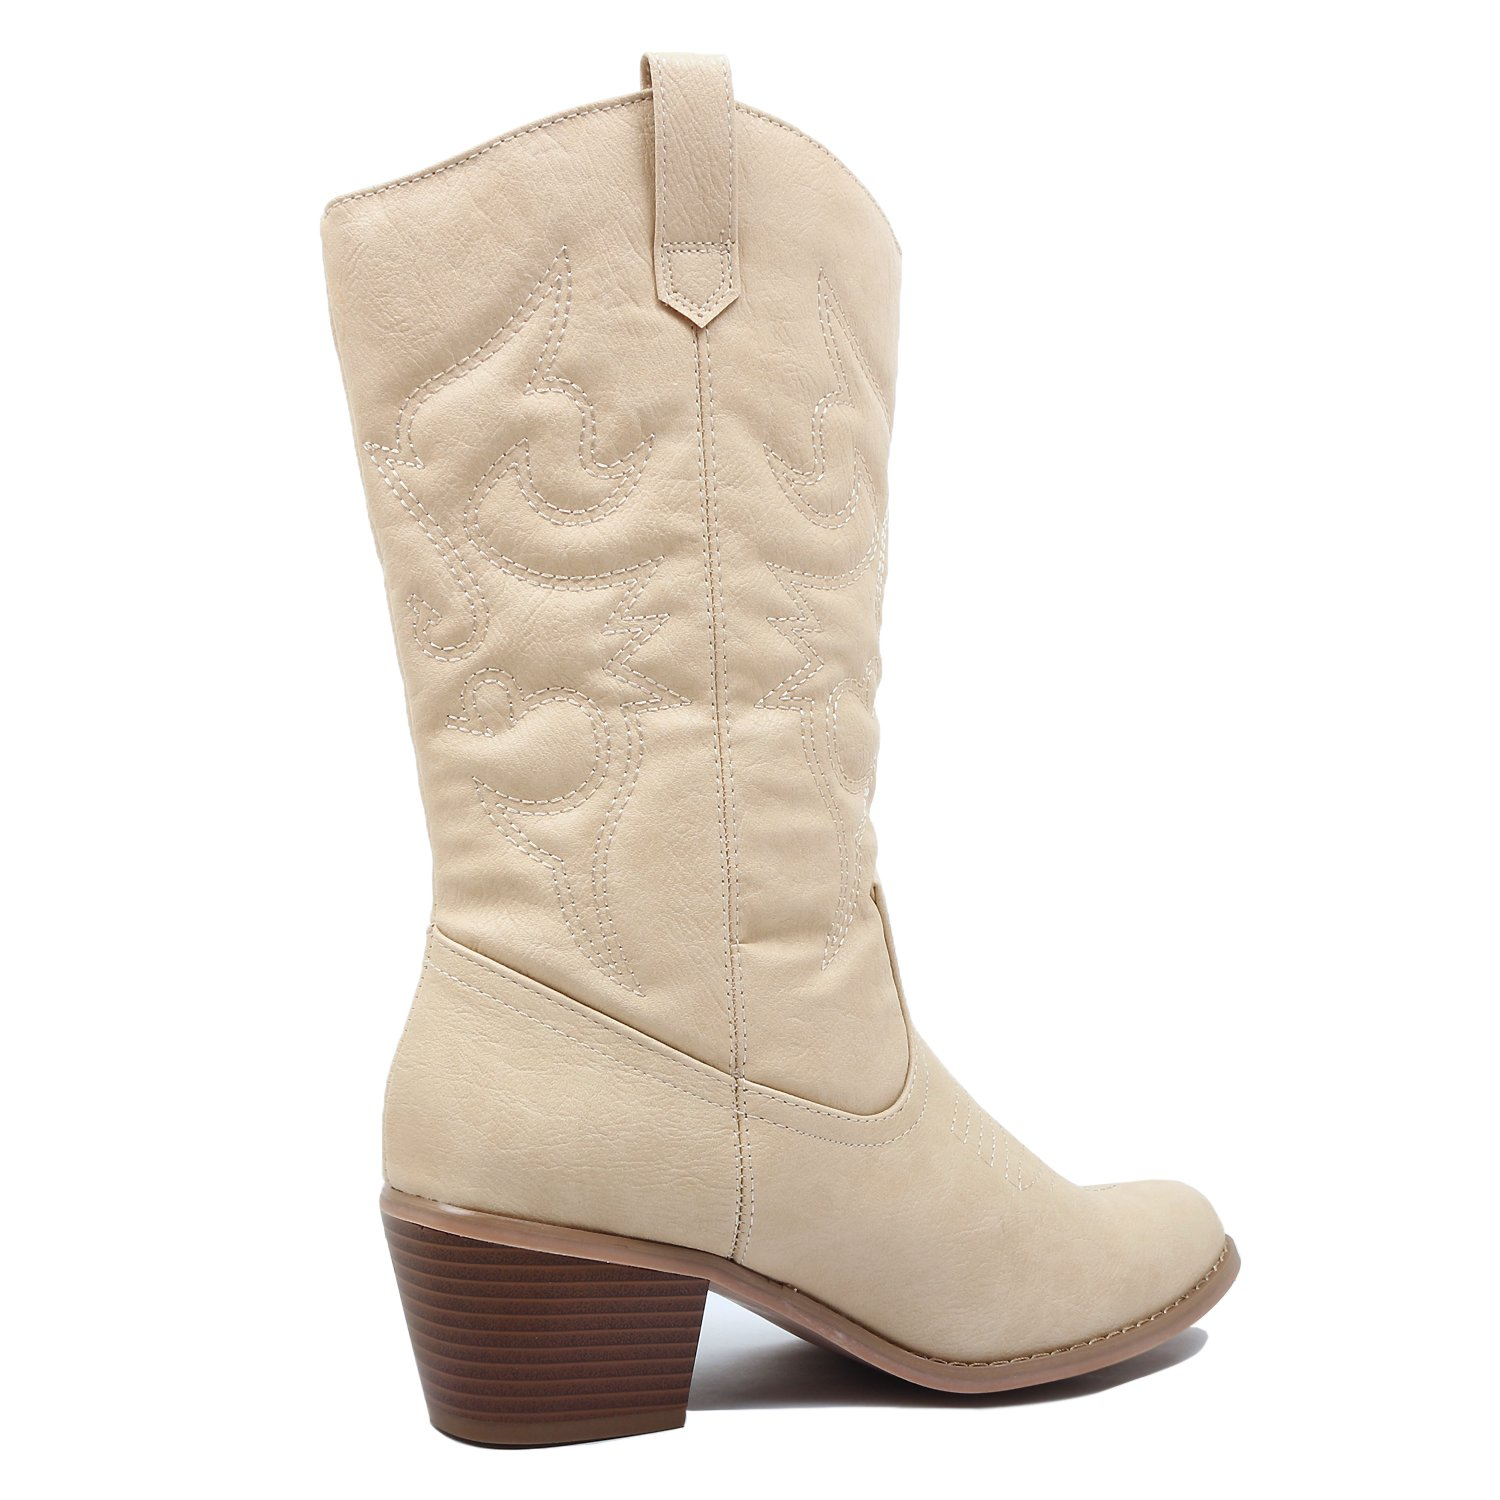 West Blvd Miami Cowboy Western Boots Boots, Beige Pu, 10 (B) M US by West Blvd (Image #5)